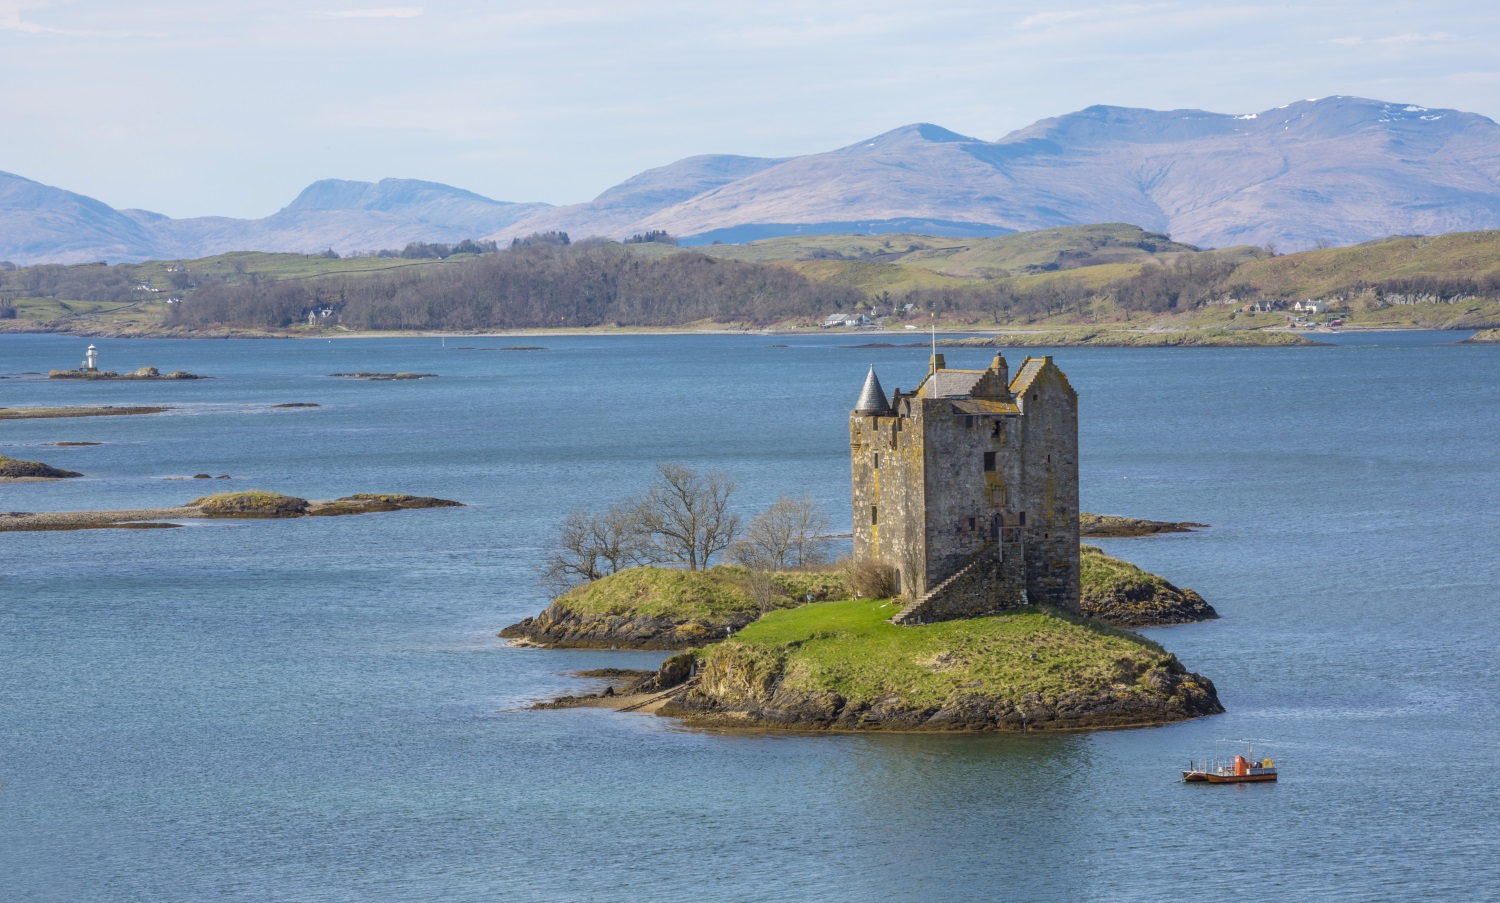 Castle Staker, Argyll and the Isles